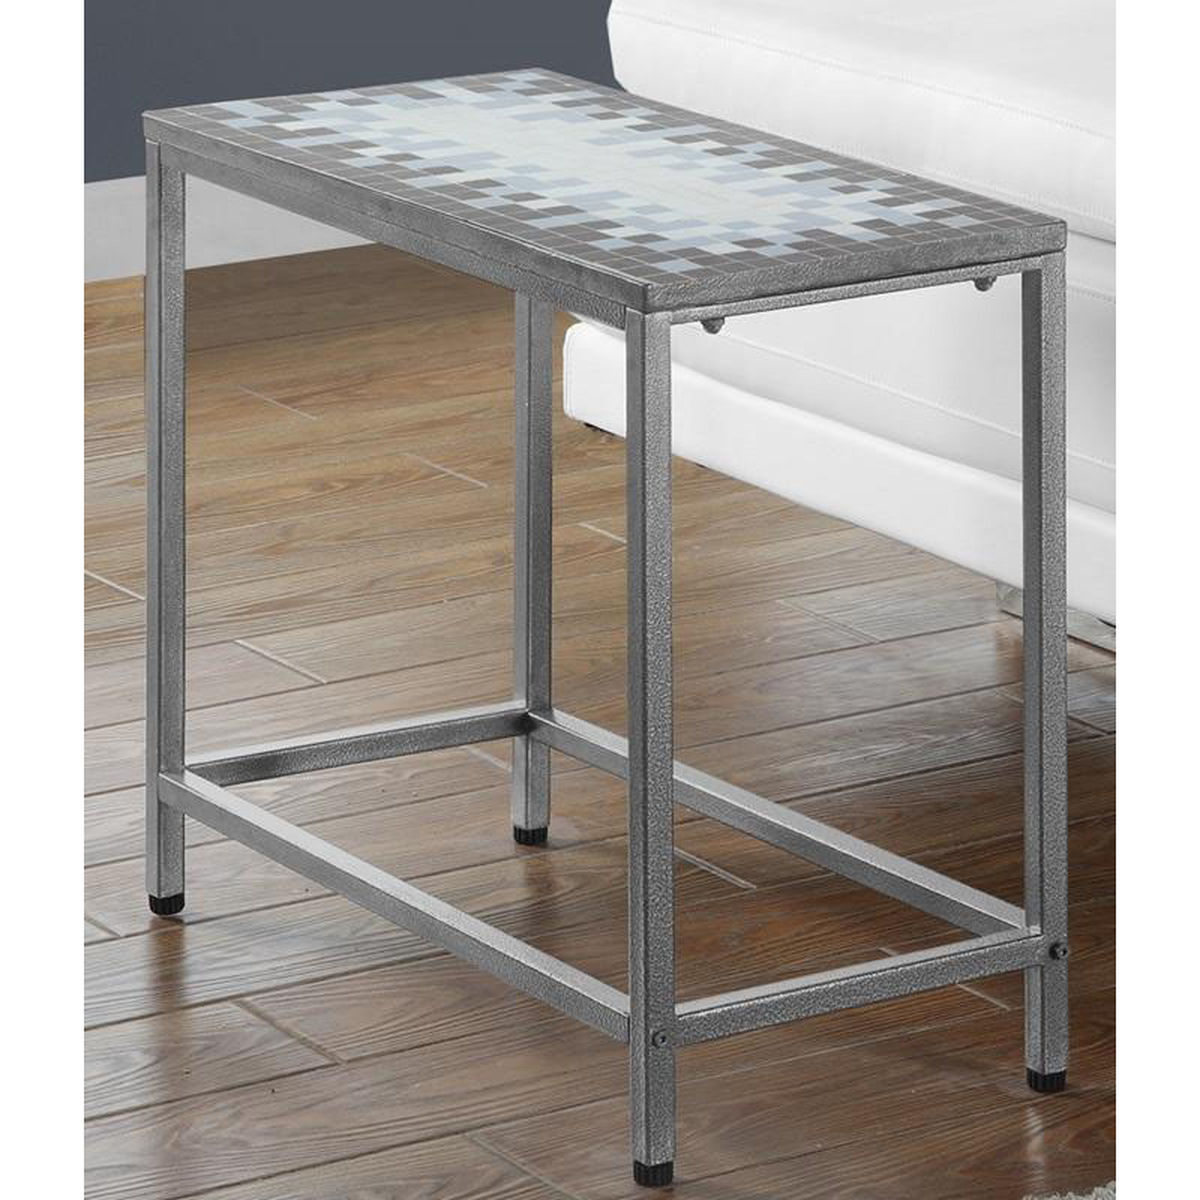 hammered metal accent table bizchair monarch specialties msp main blue our with gray and mosaic tile top counter height pub clear acrylic coffee portable rabat set side tables